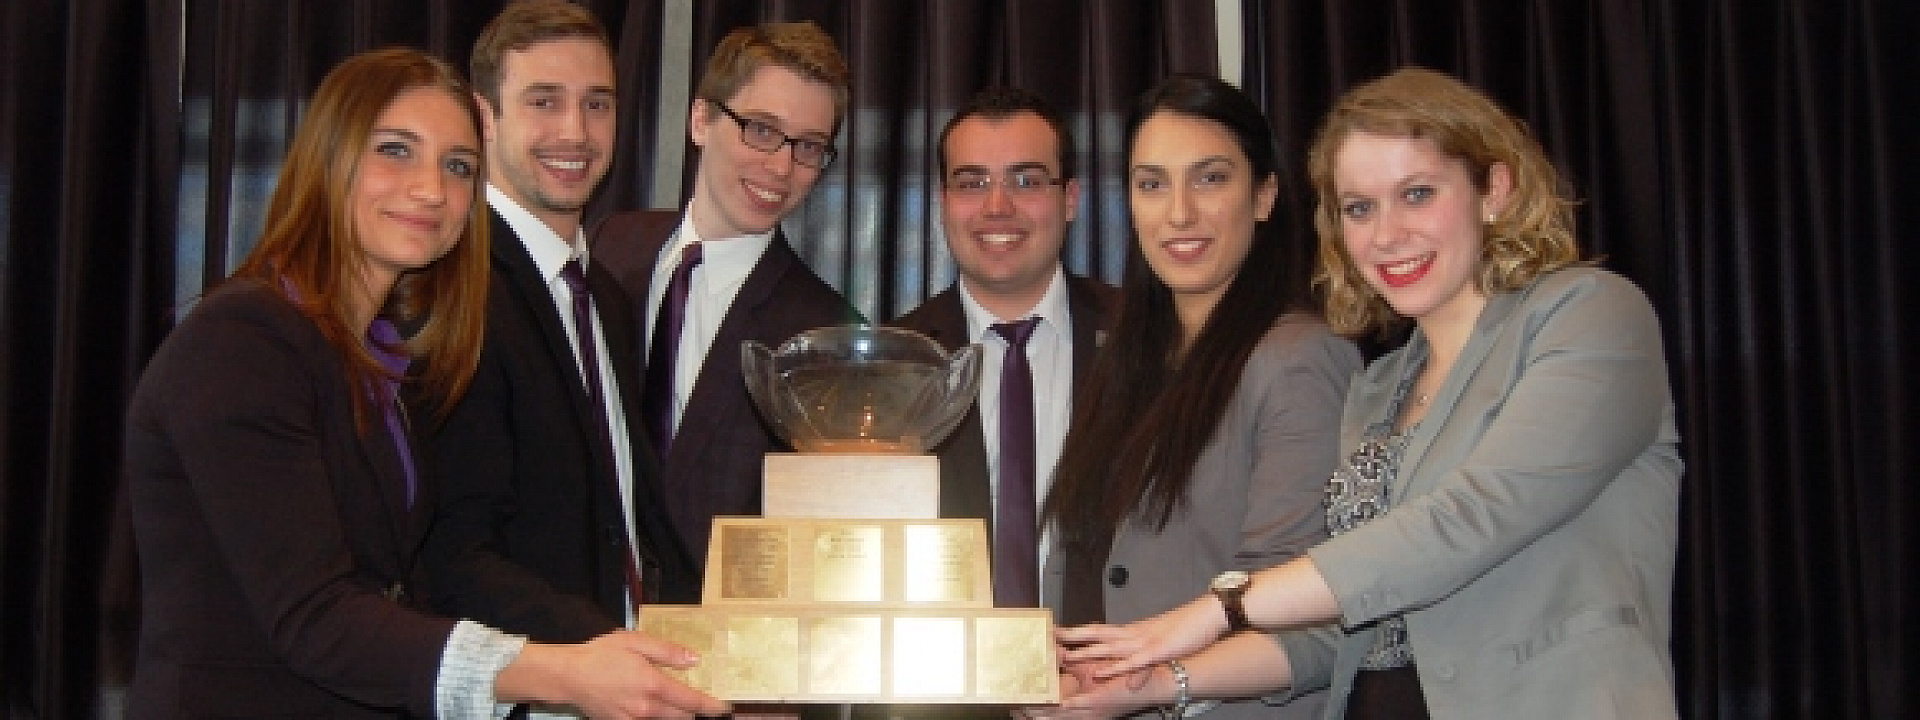 winning team holding the Michel Cloutier Trophee